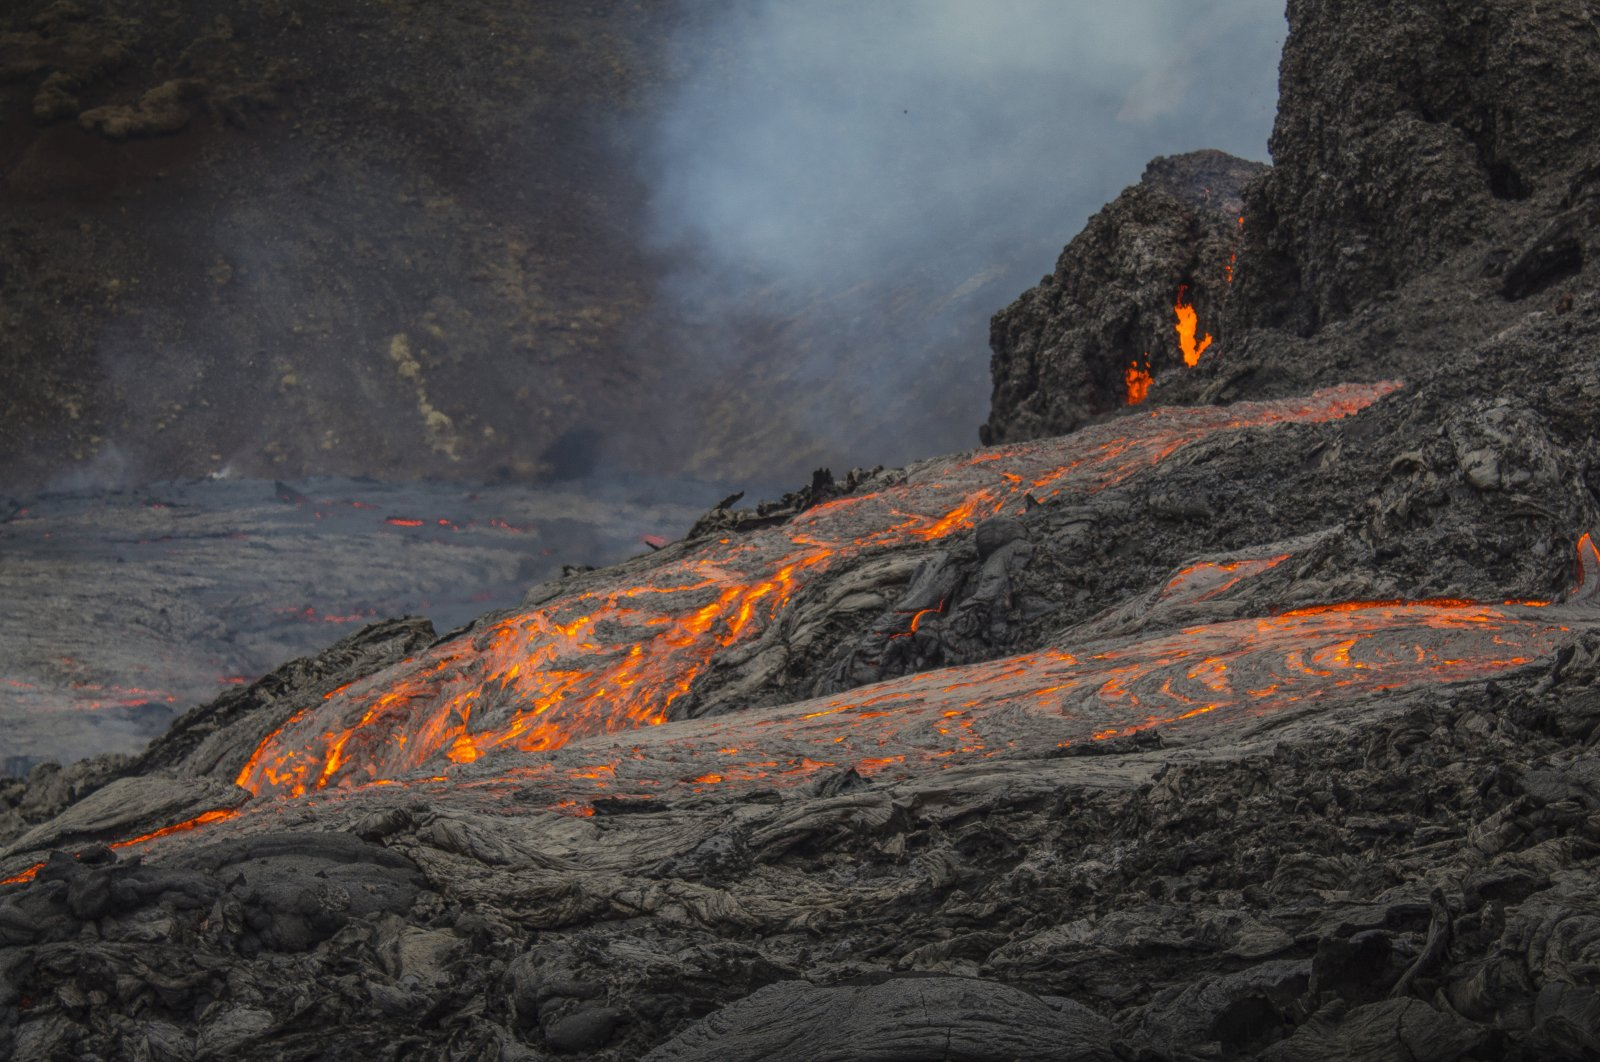 Lava flows from an eruption of a volcano on the Reykjanes Peninsula in southwestern Iceland, March 20, 2021. (AP Photo)